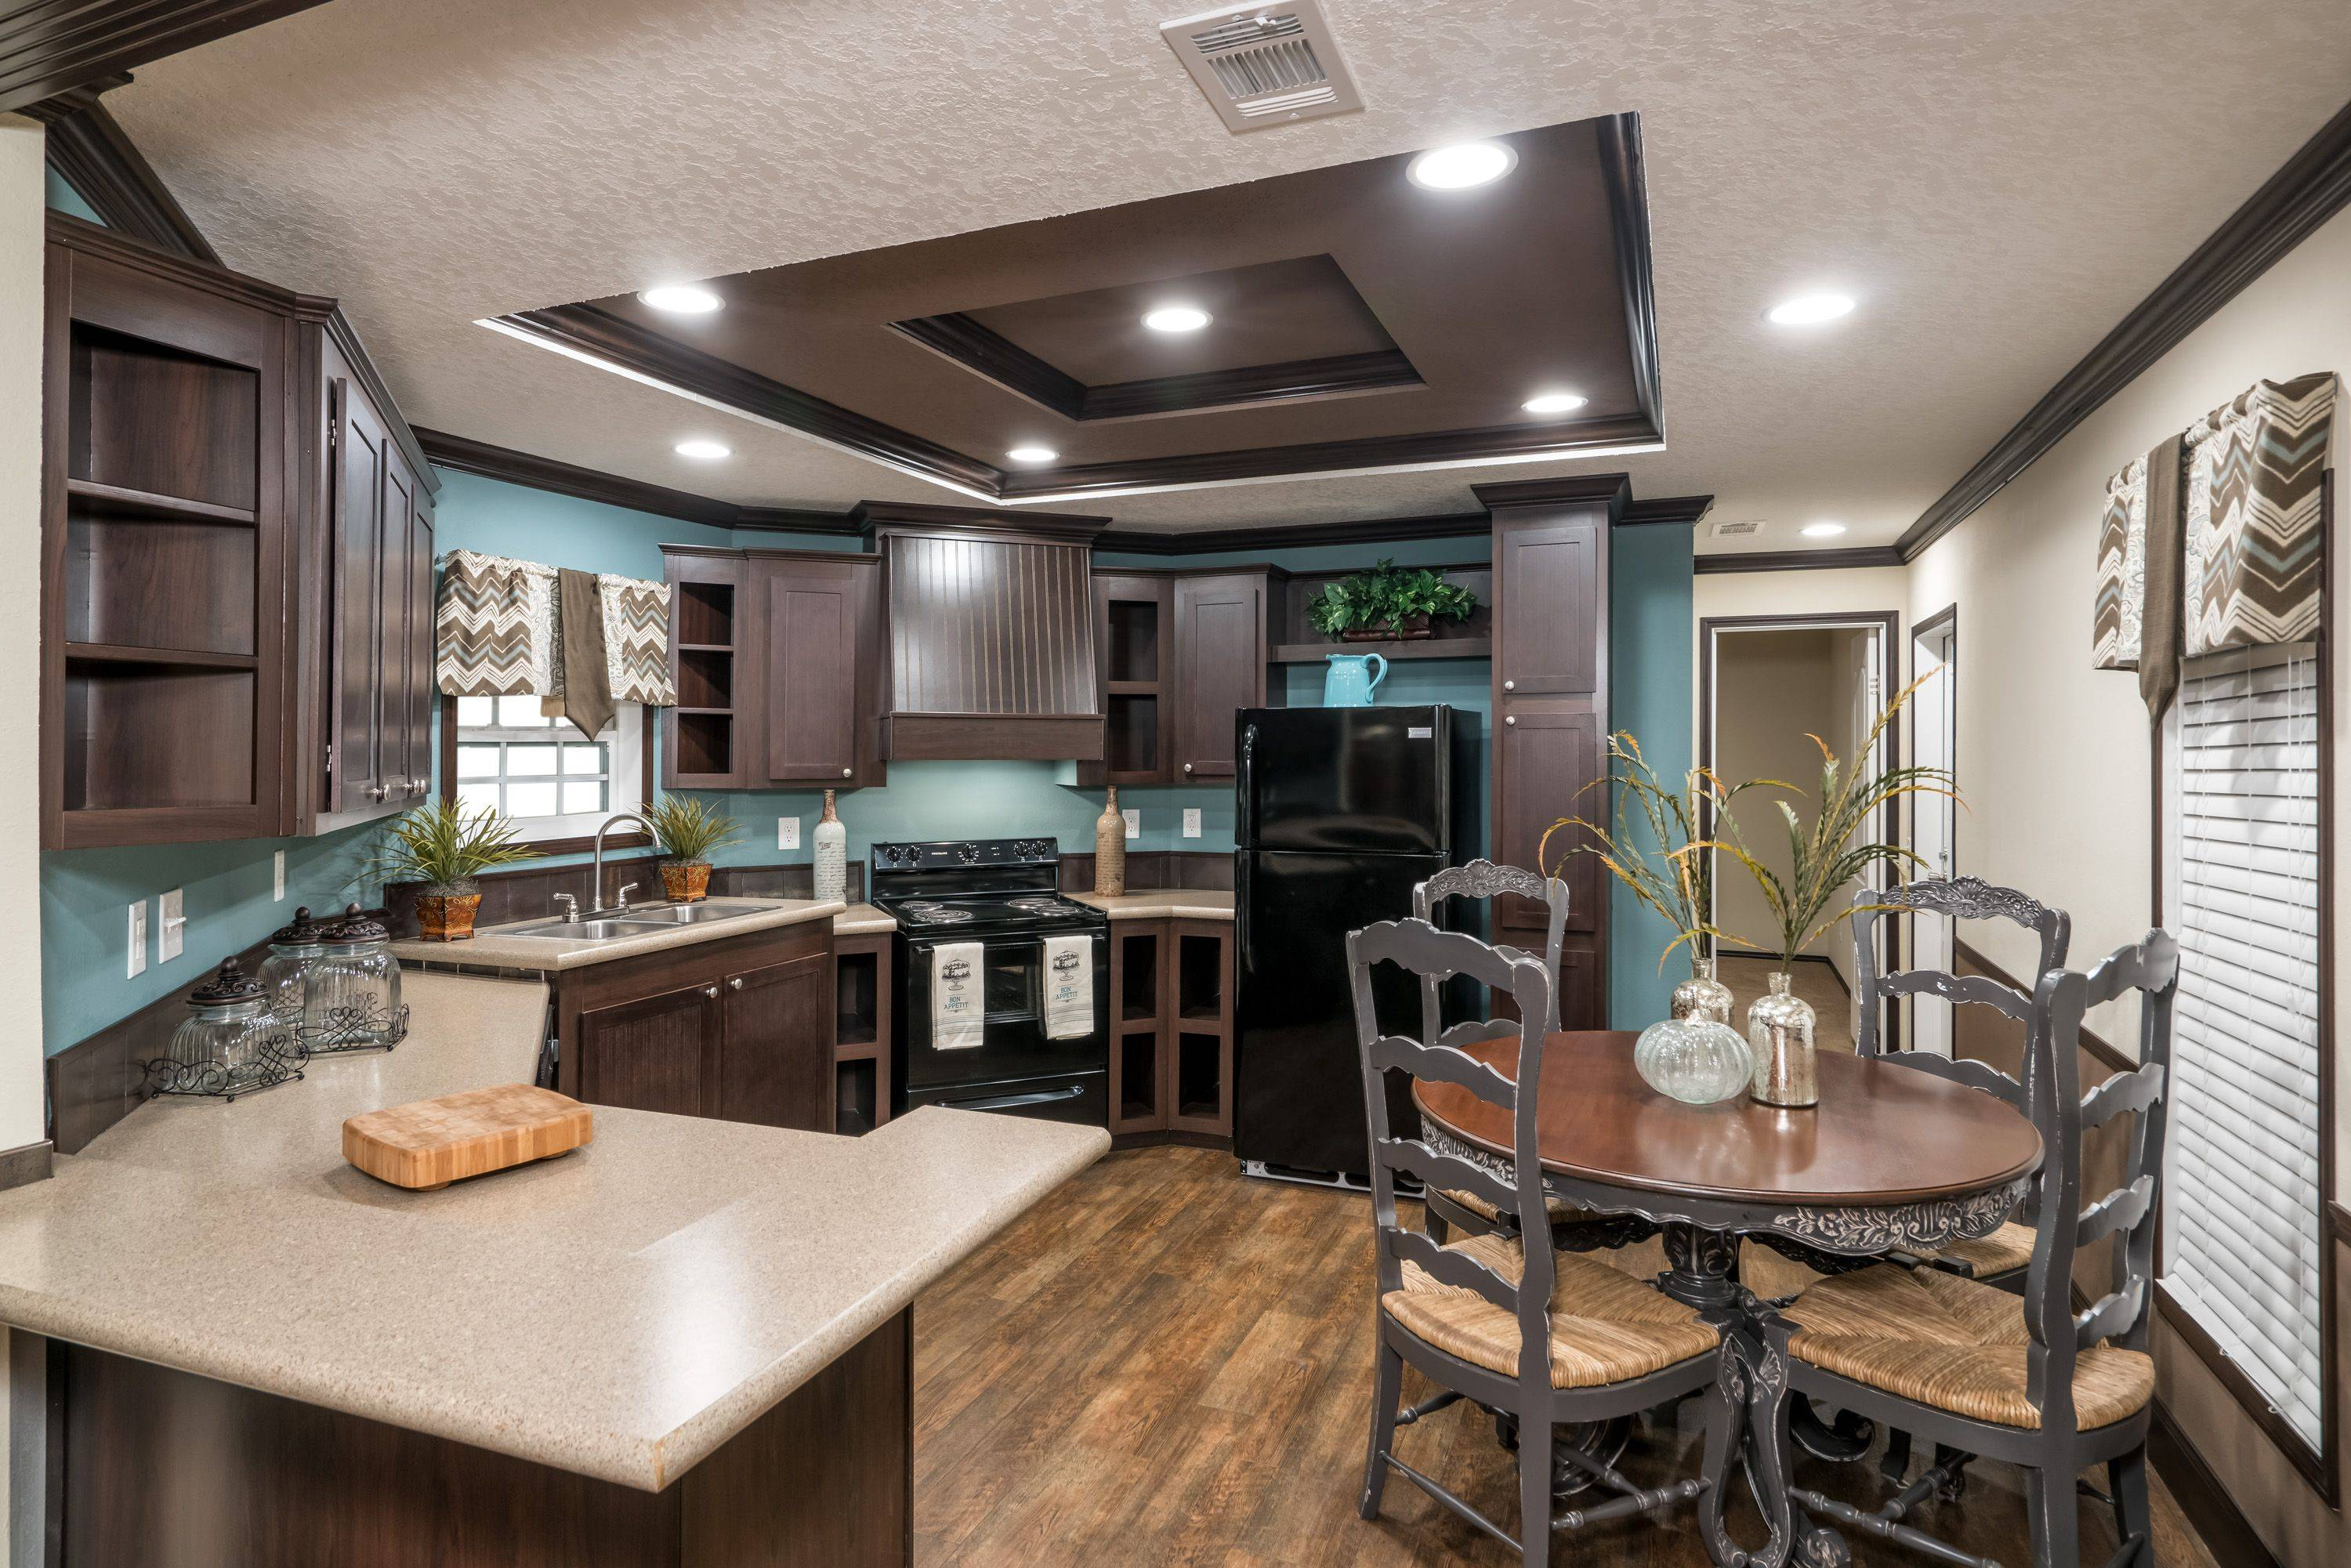 interior pictures of new mobile homes mobile homes c2b7 ceiling c2b7 the liberty 3 bedroom 2 bath